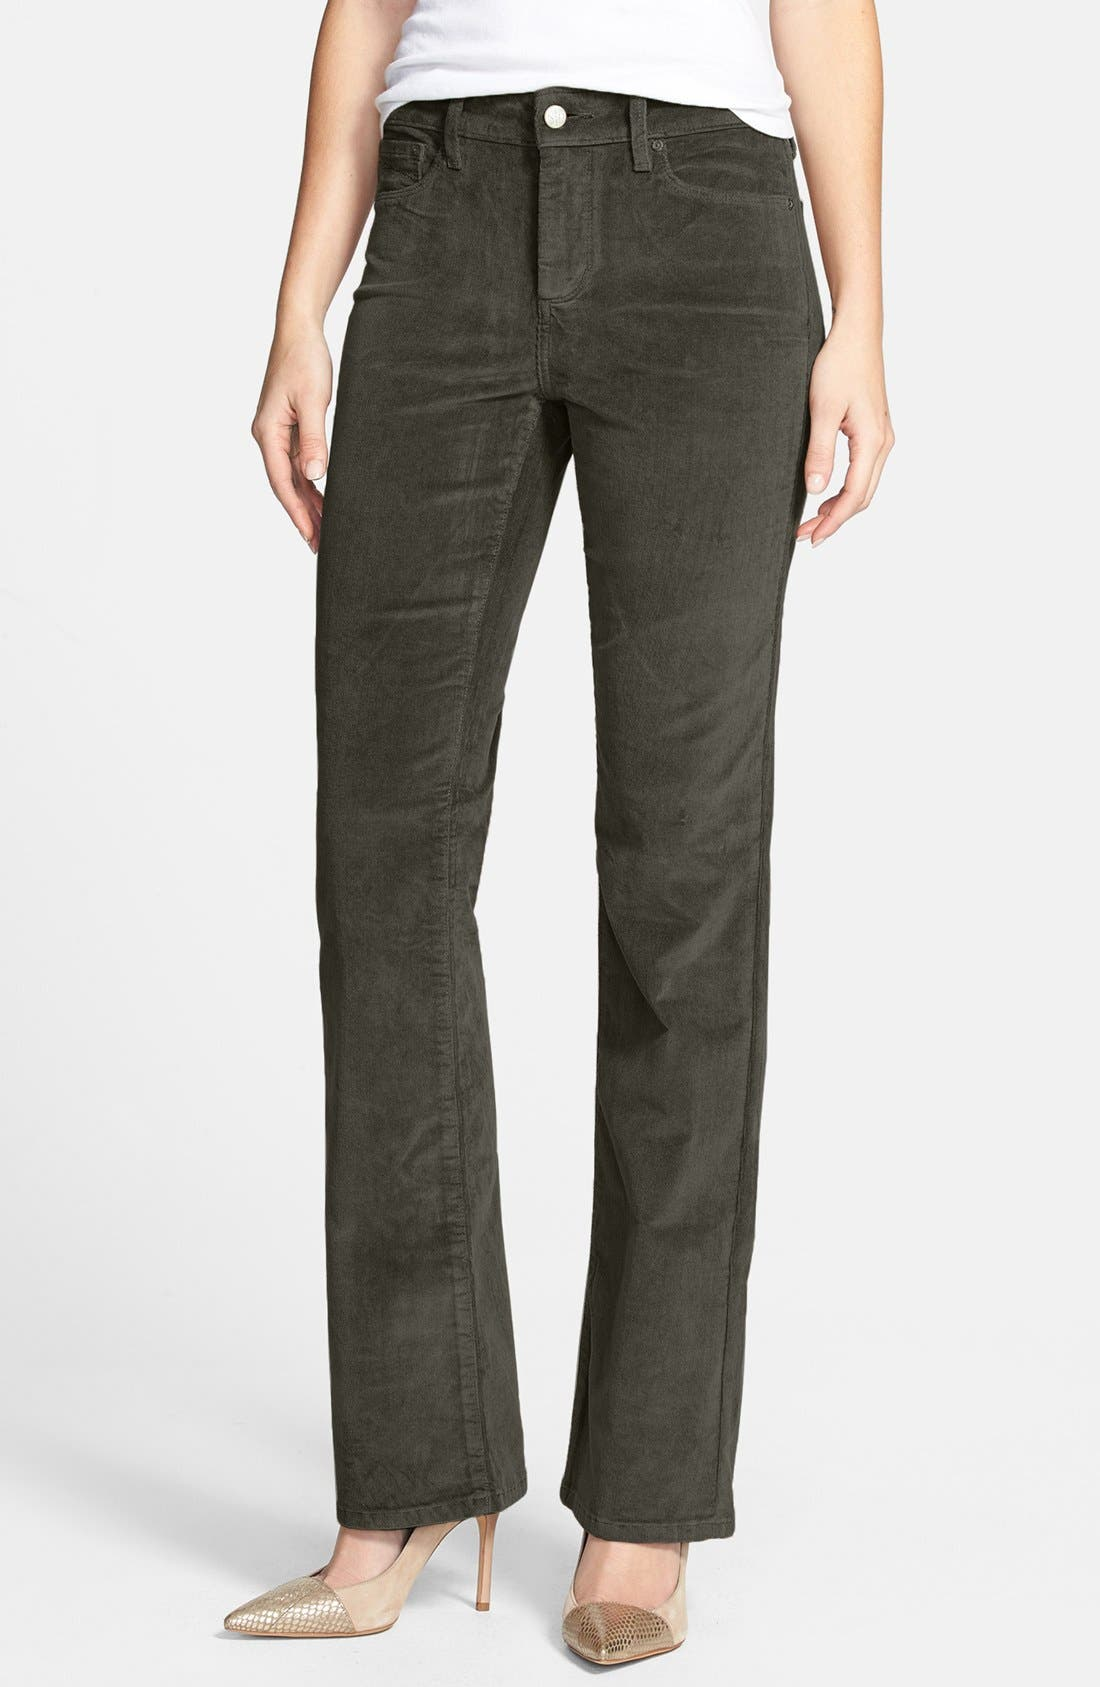 Alternate Image 1 Selected - NYDJ 'Barbara' Colored Stretch Corduroy Bootcut Pants (Regular & Petite)